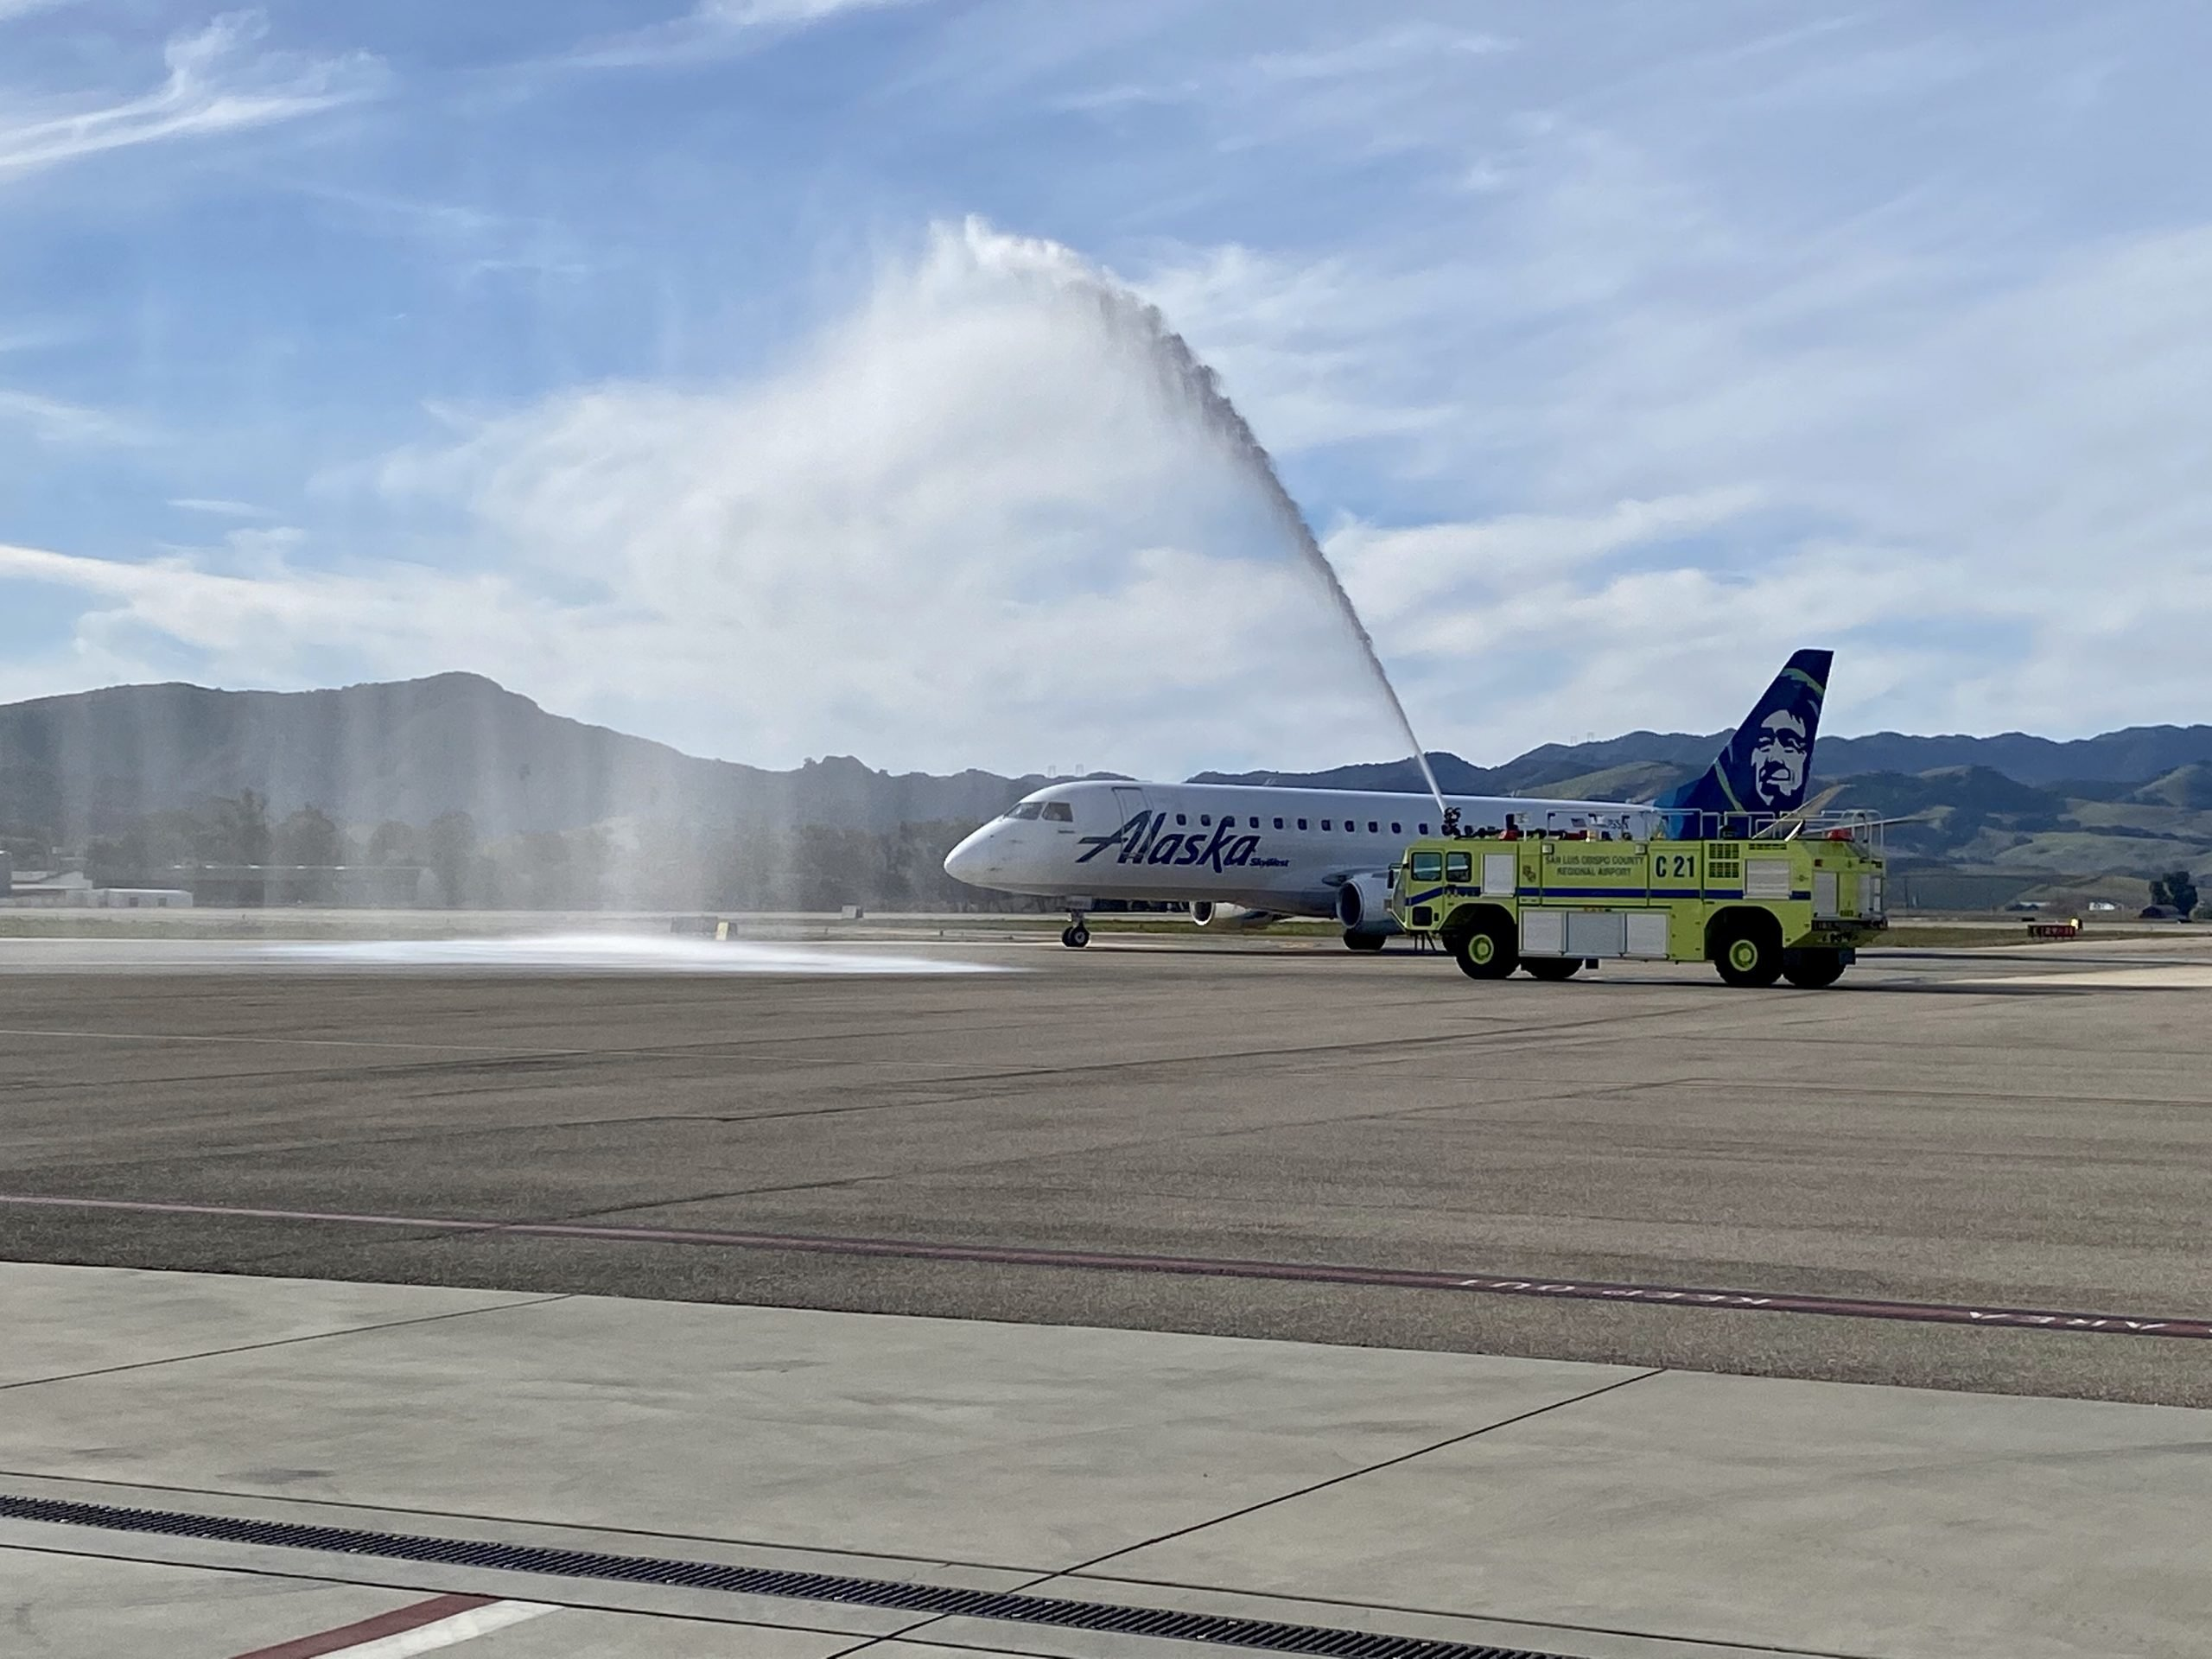 water cannon salute